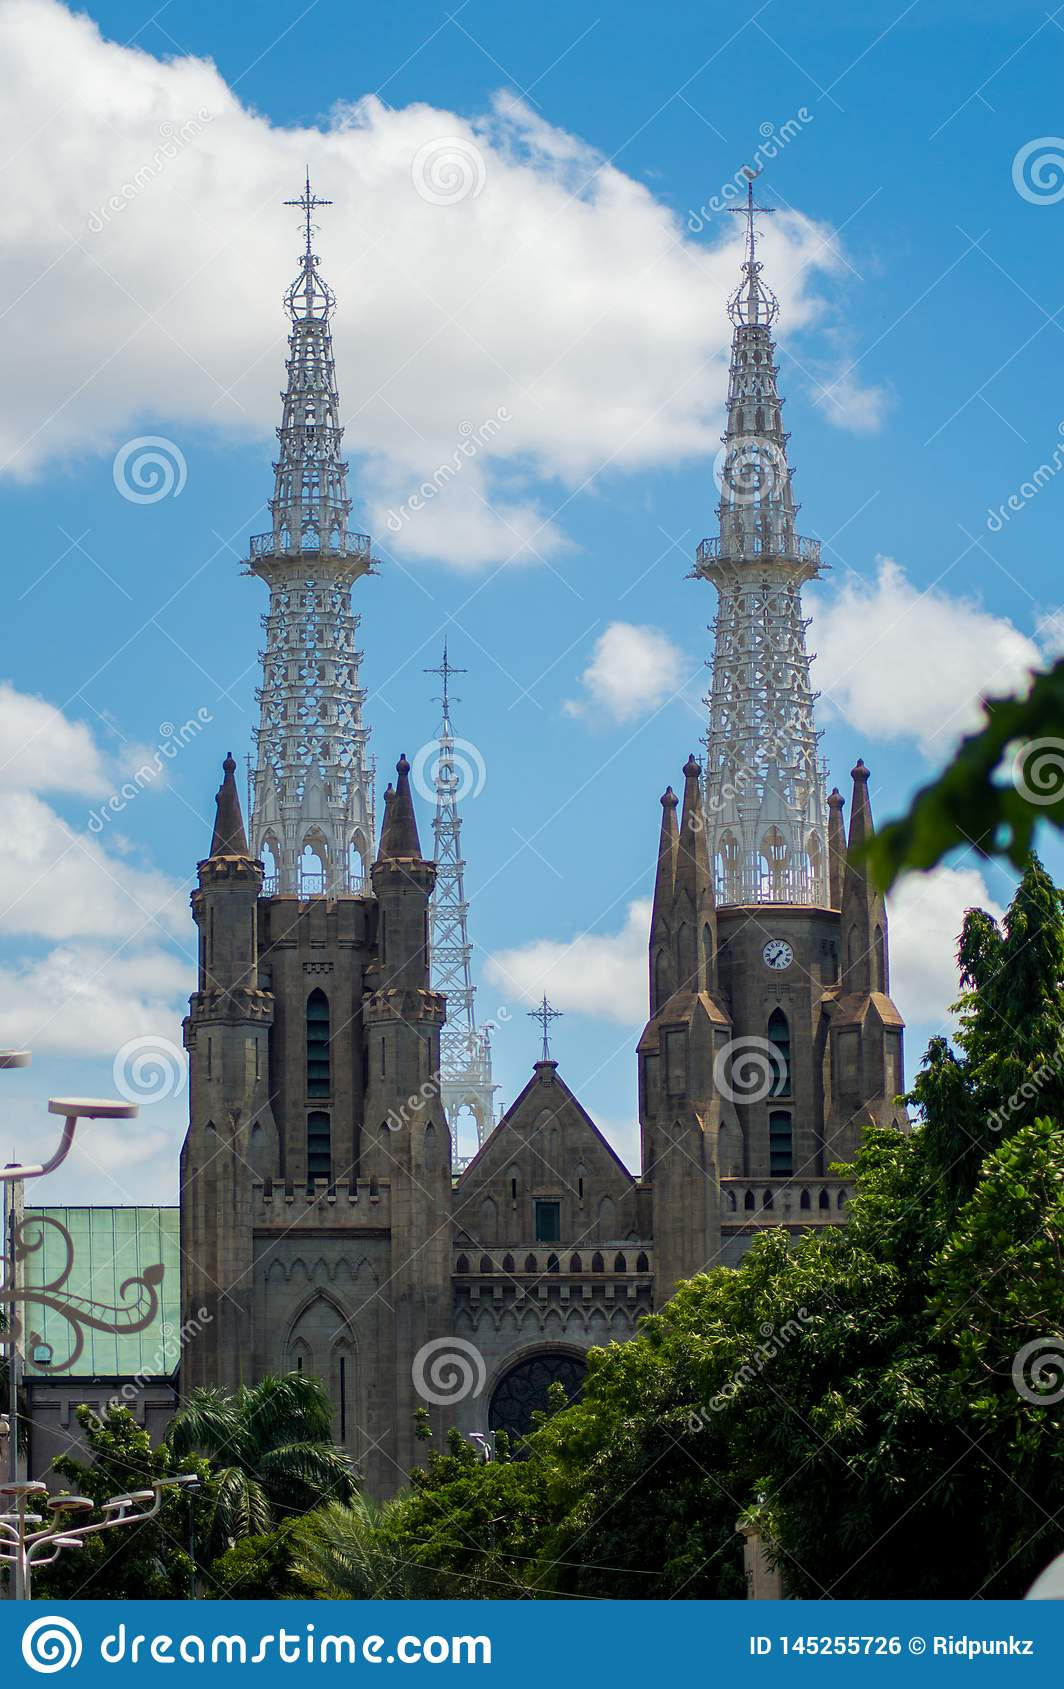 cathedral under the beautiful blue sky